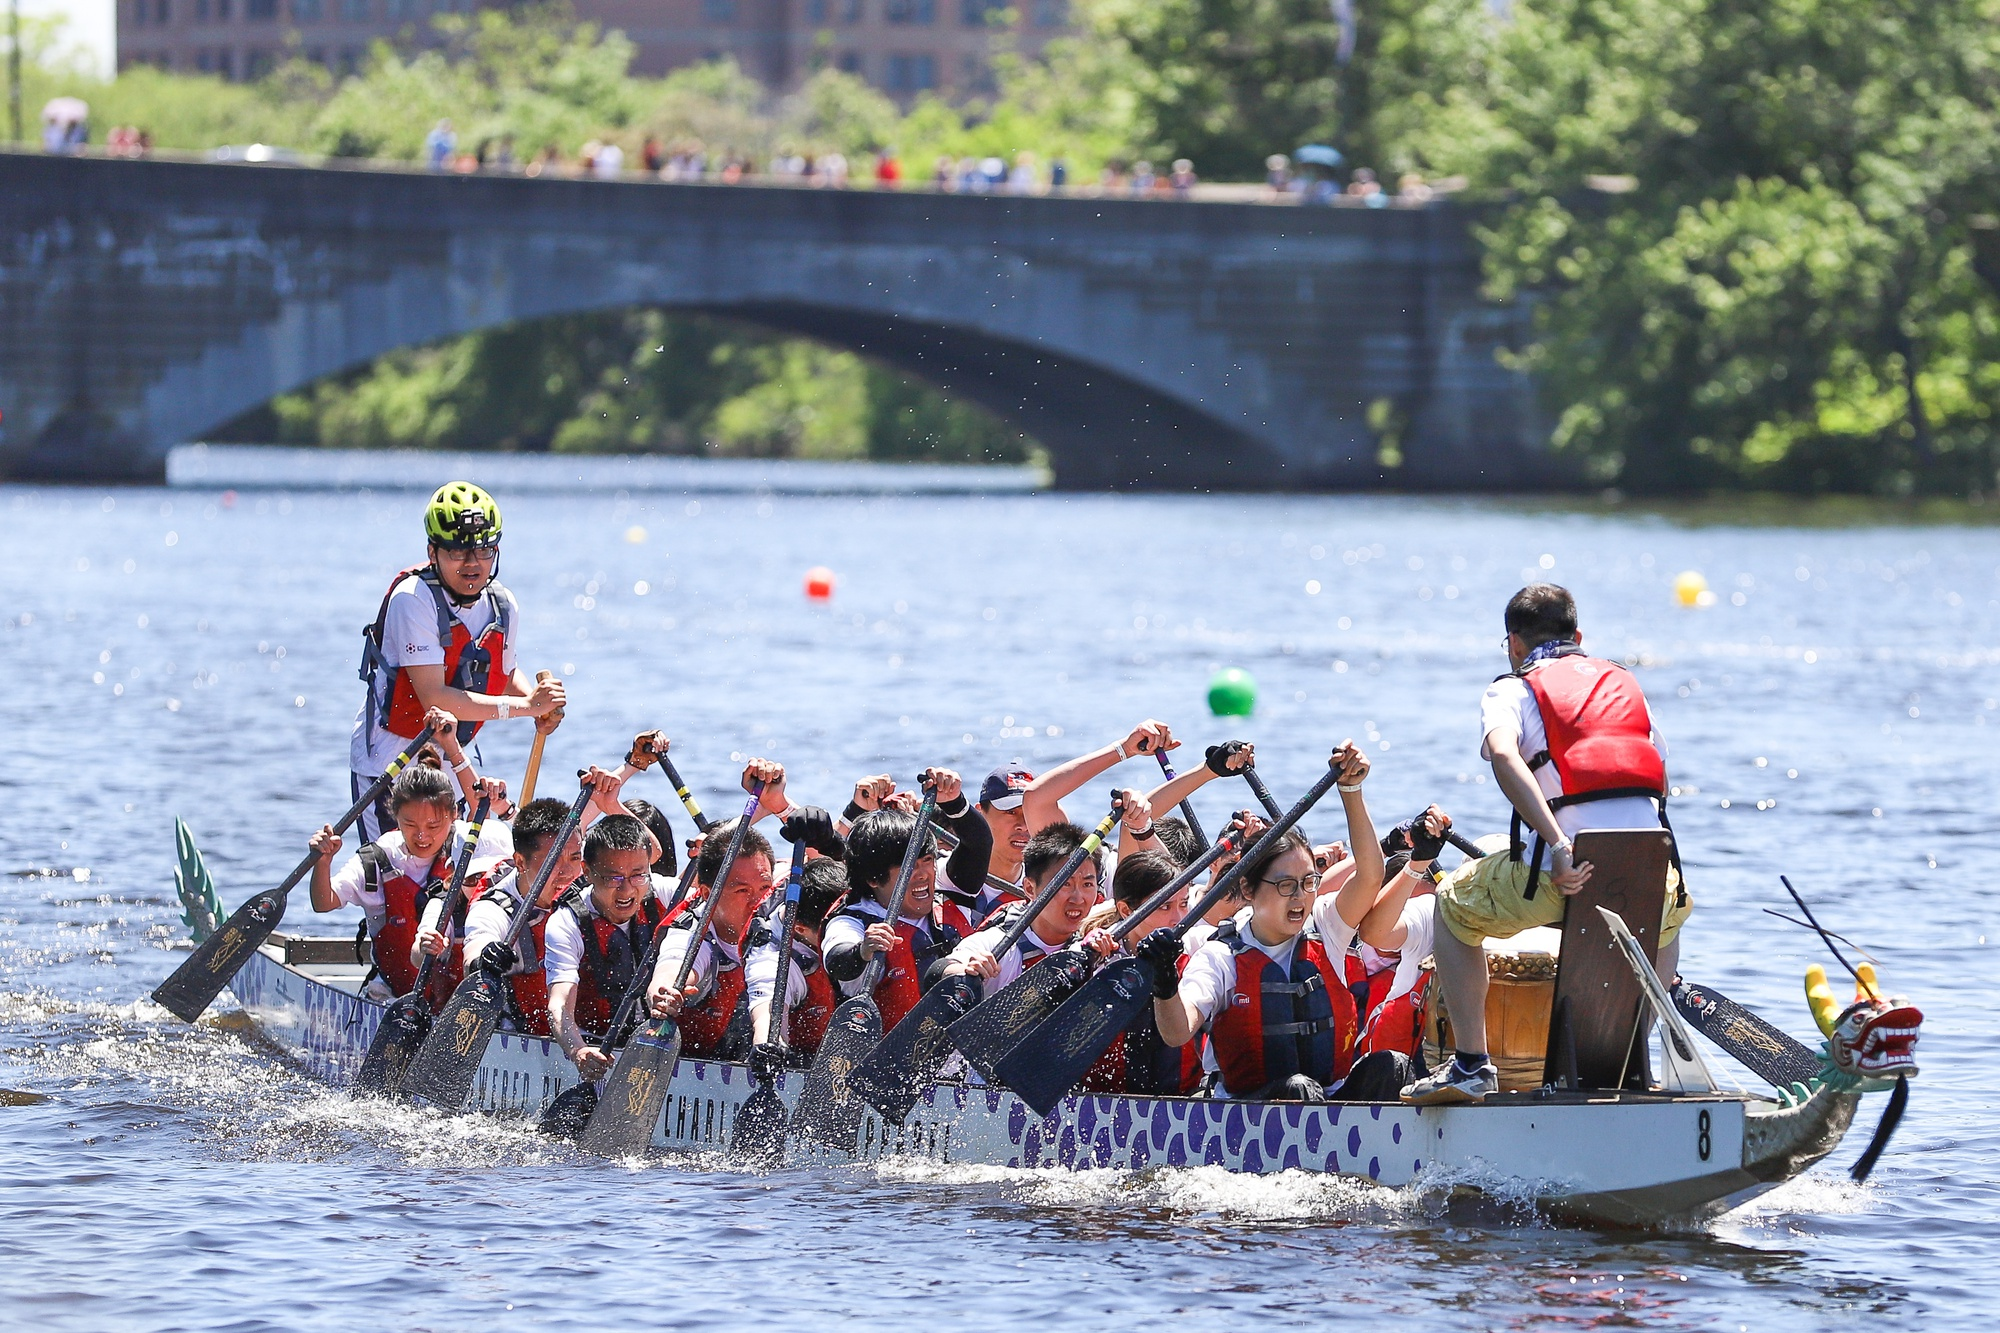 A record 76 teams of over 1500 paddlers from across the country competed in this year's Boston Dragon Boat Festival races.